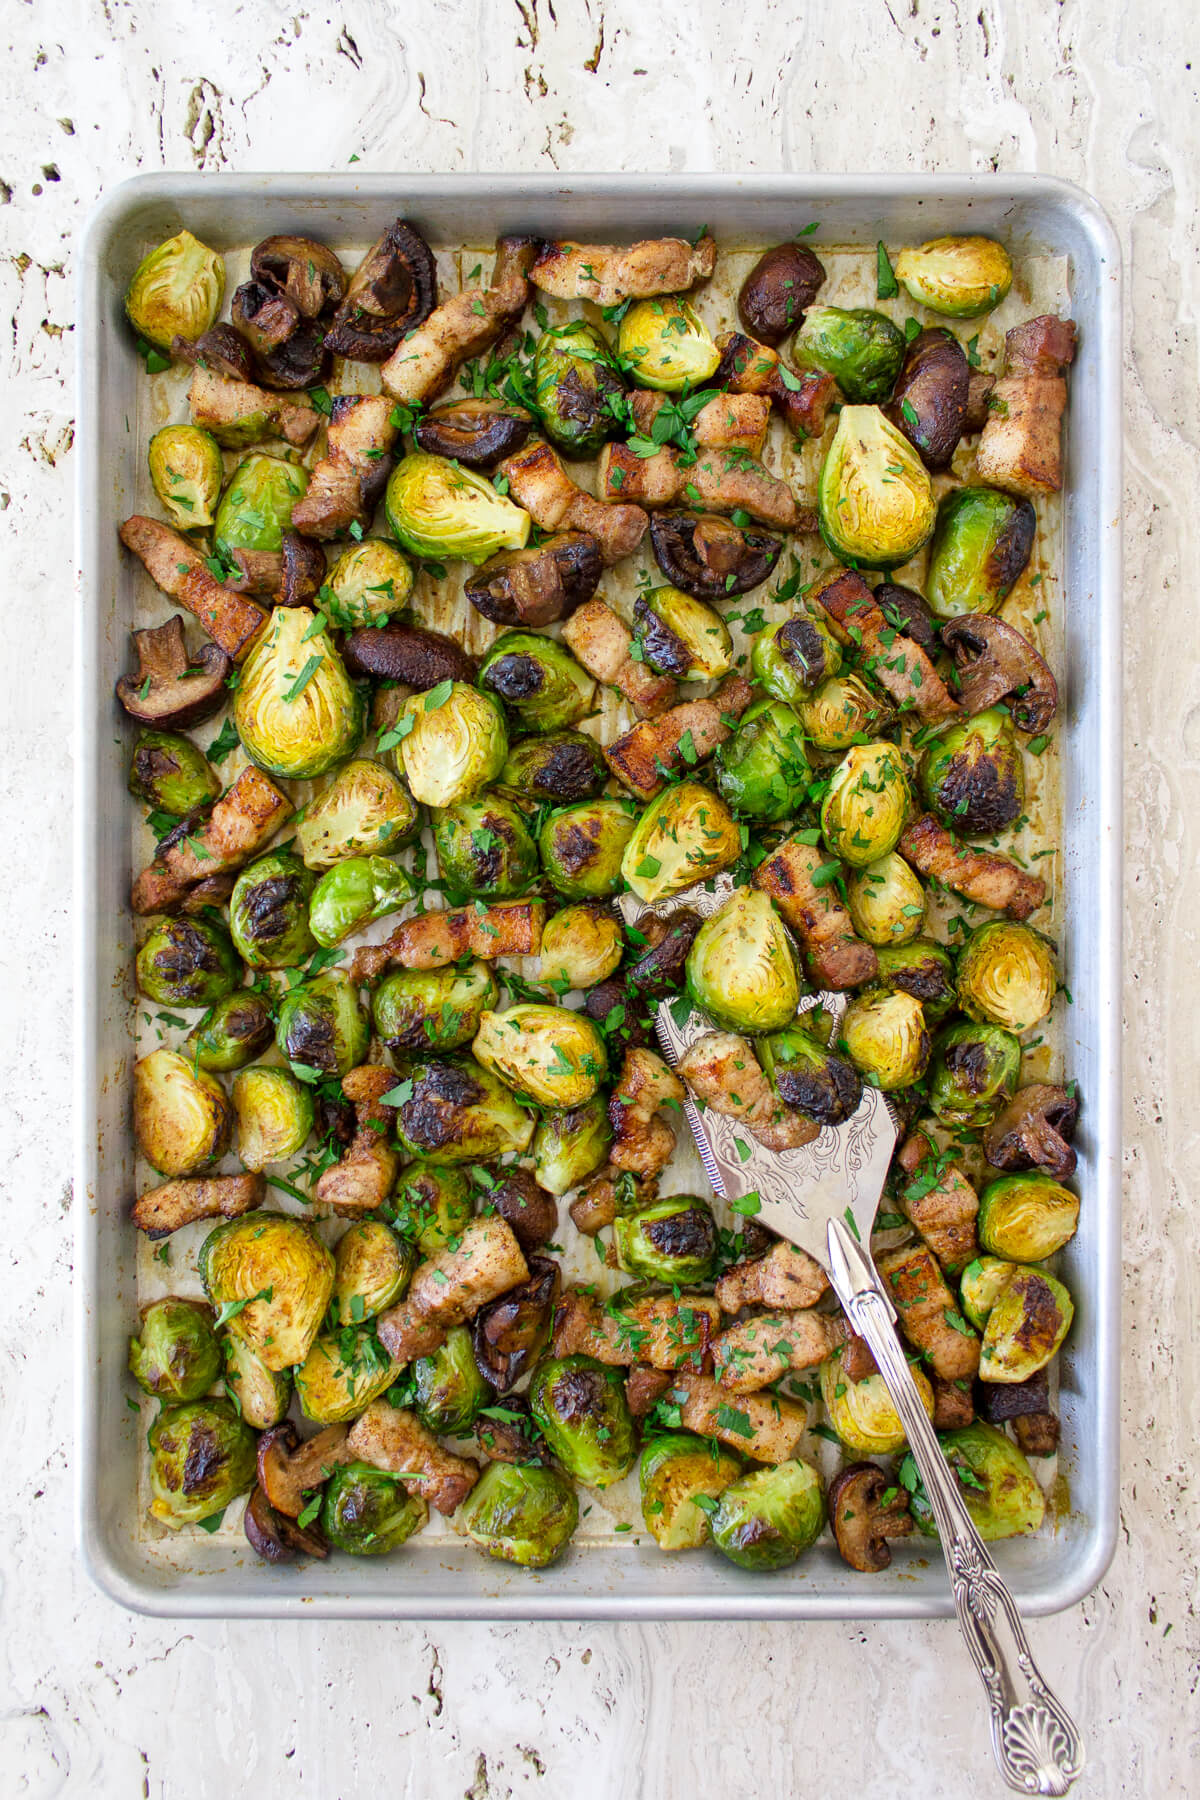 These Roasted Brussel Sprouts with Pork Belly & Mushrooms are super easy to make and roast in one pan for a very delicious side dish! Recipe at www.designsofanykind.com